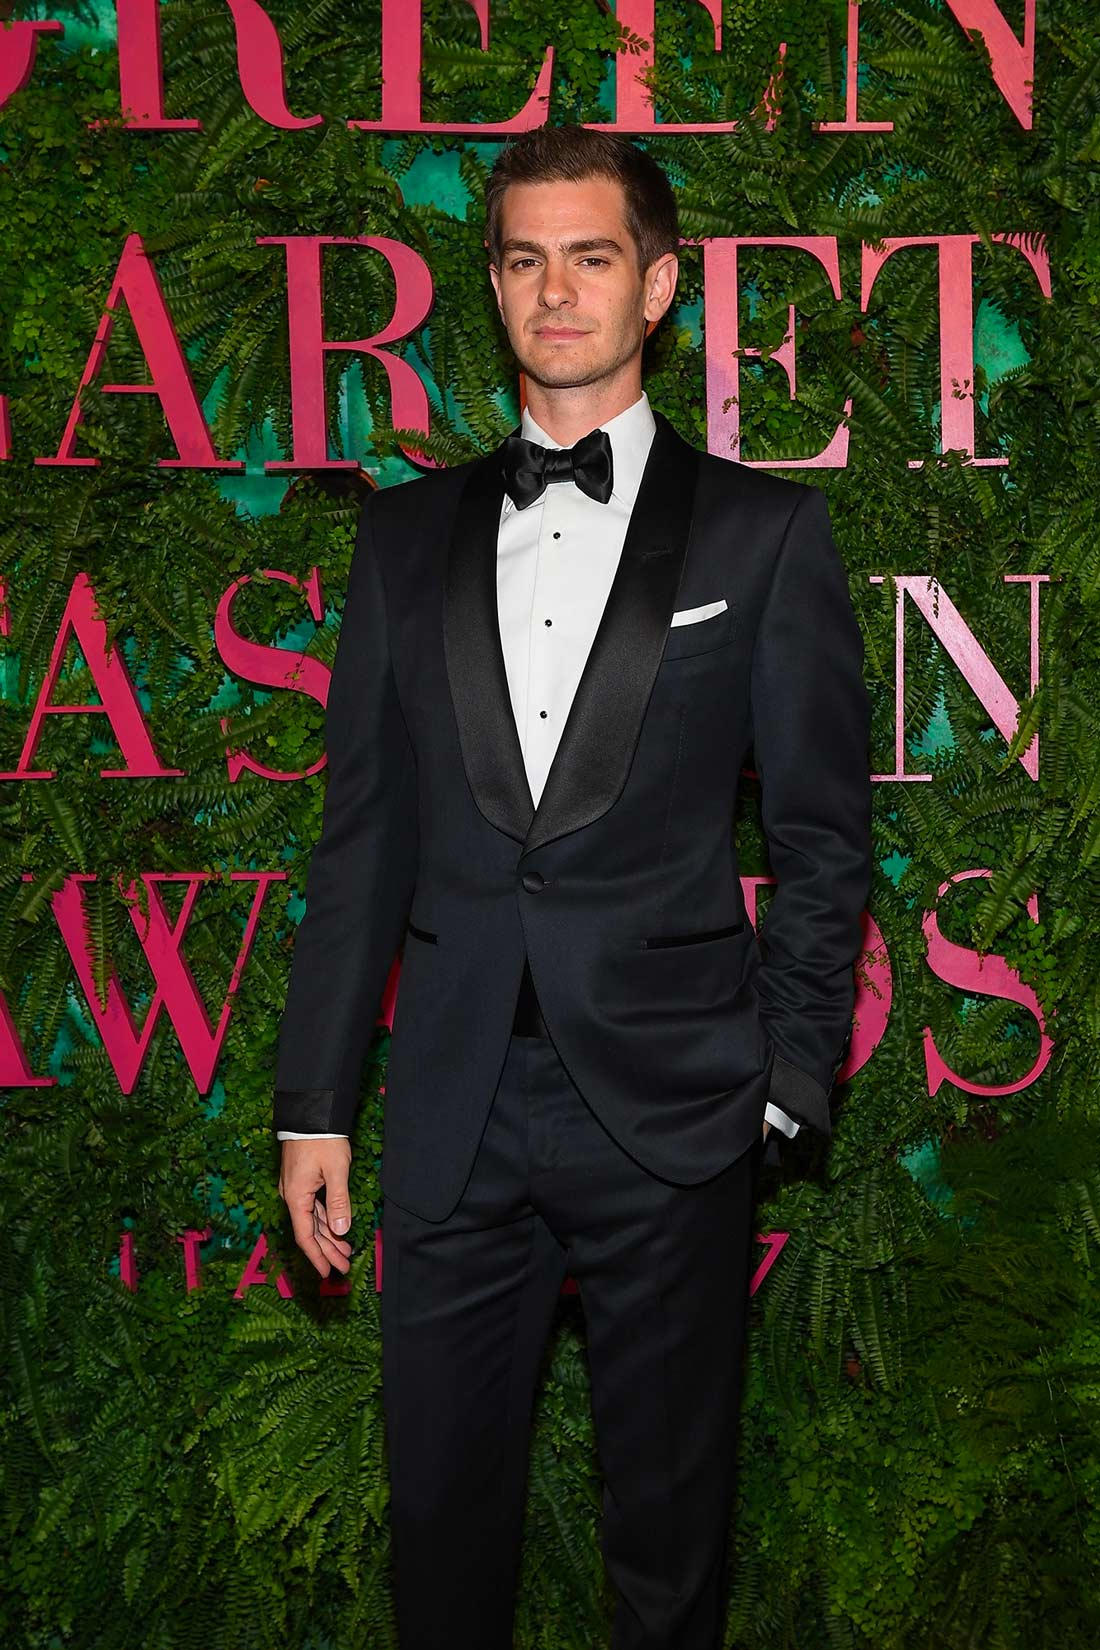 Green Carpet Fashion Awards - Milano 2017 - Andrew Garfield - Grooming by Emanuela di Giammarco for Massimo Serini